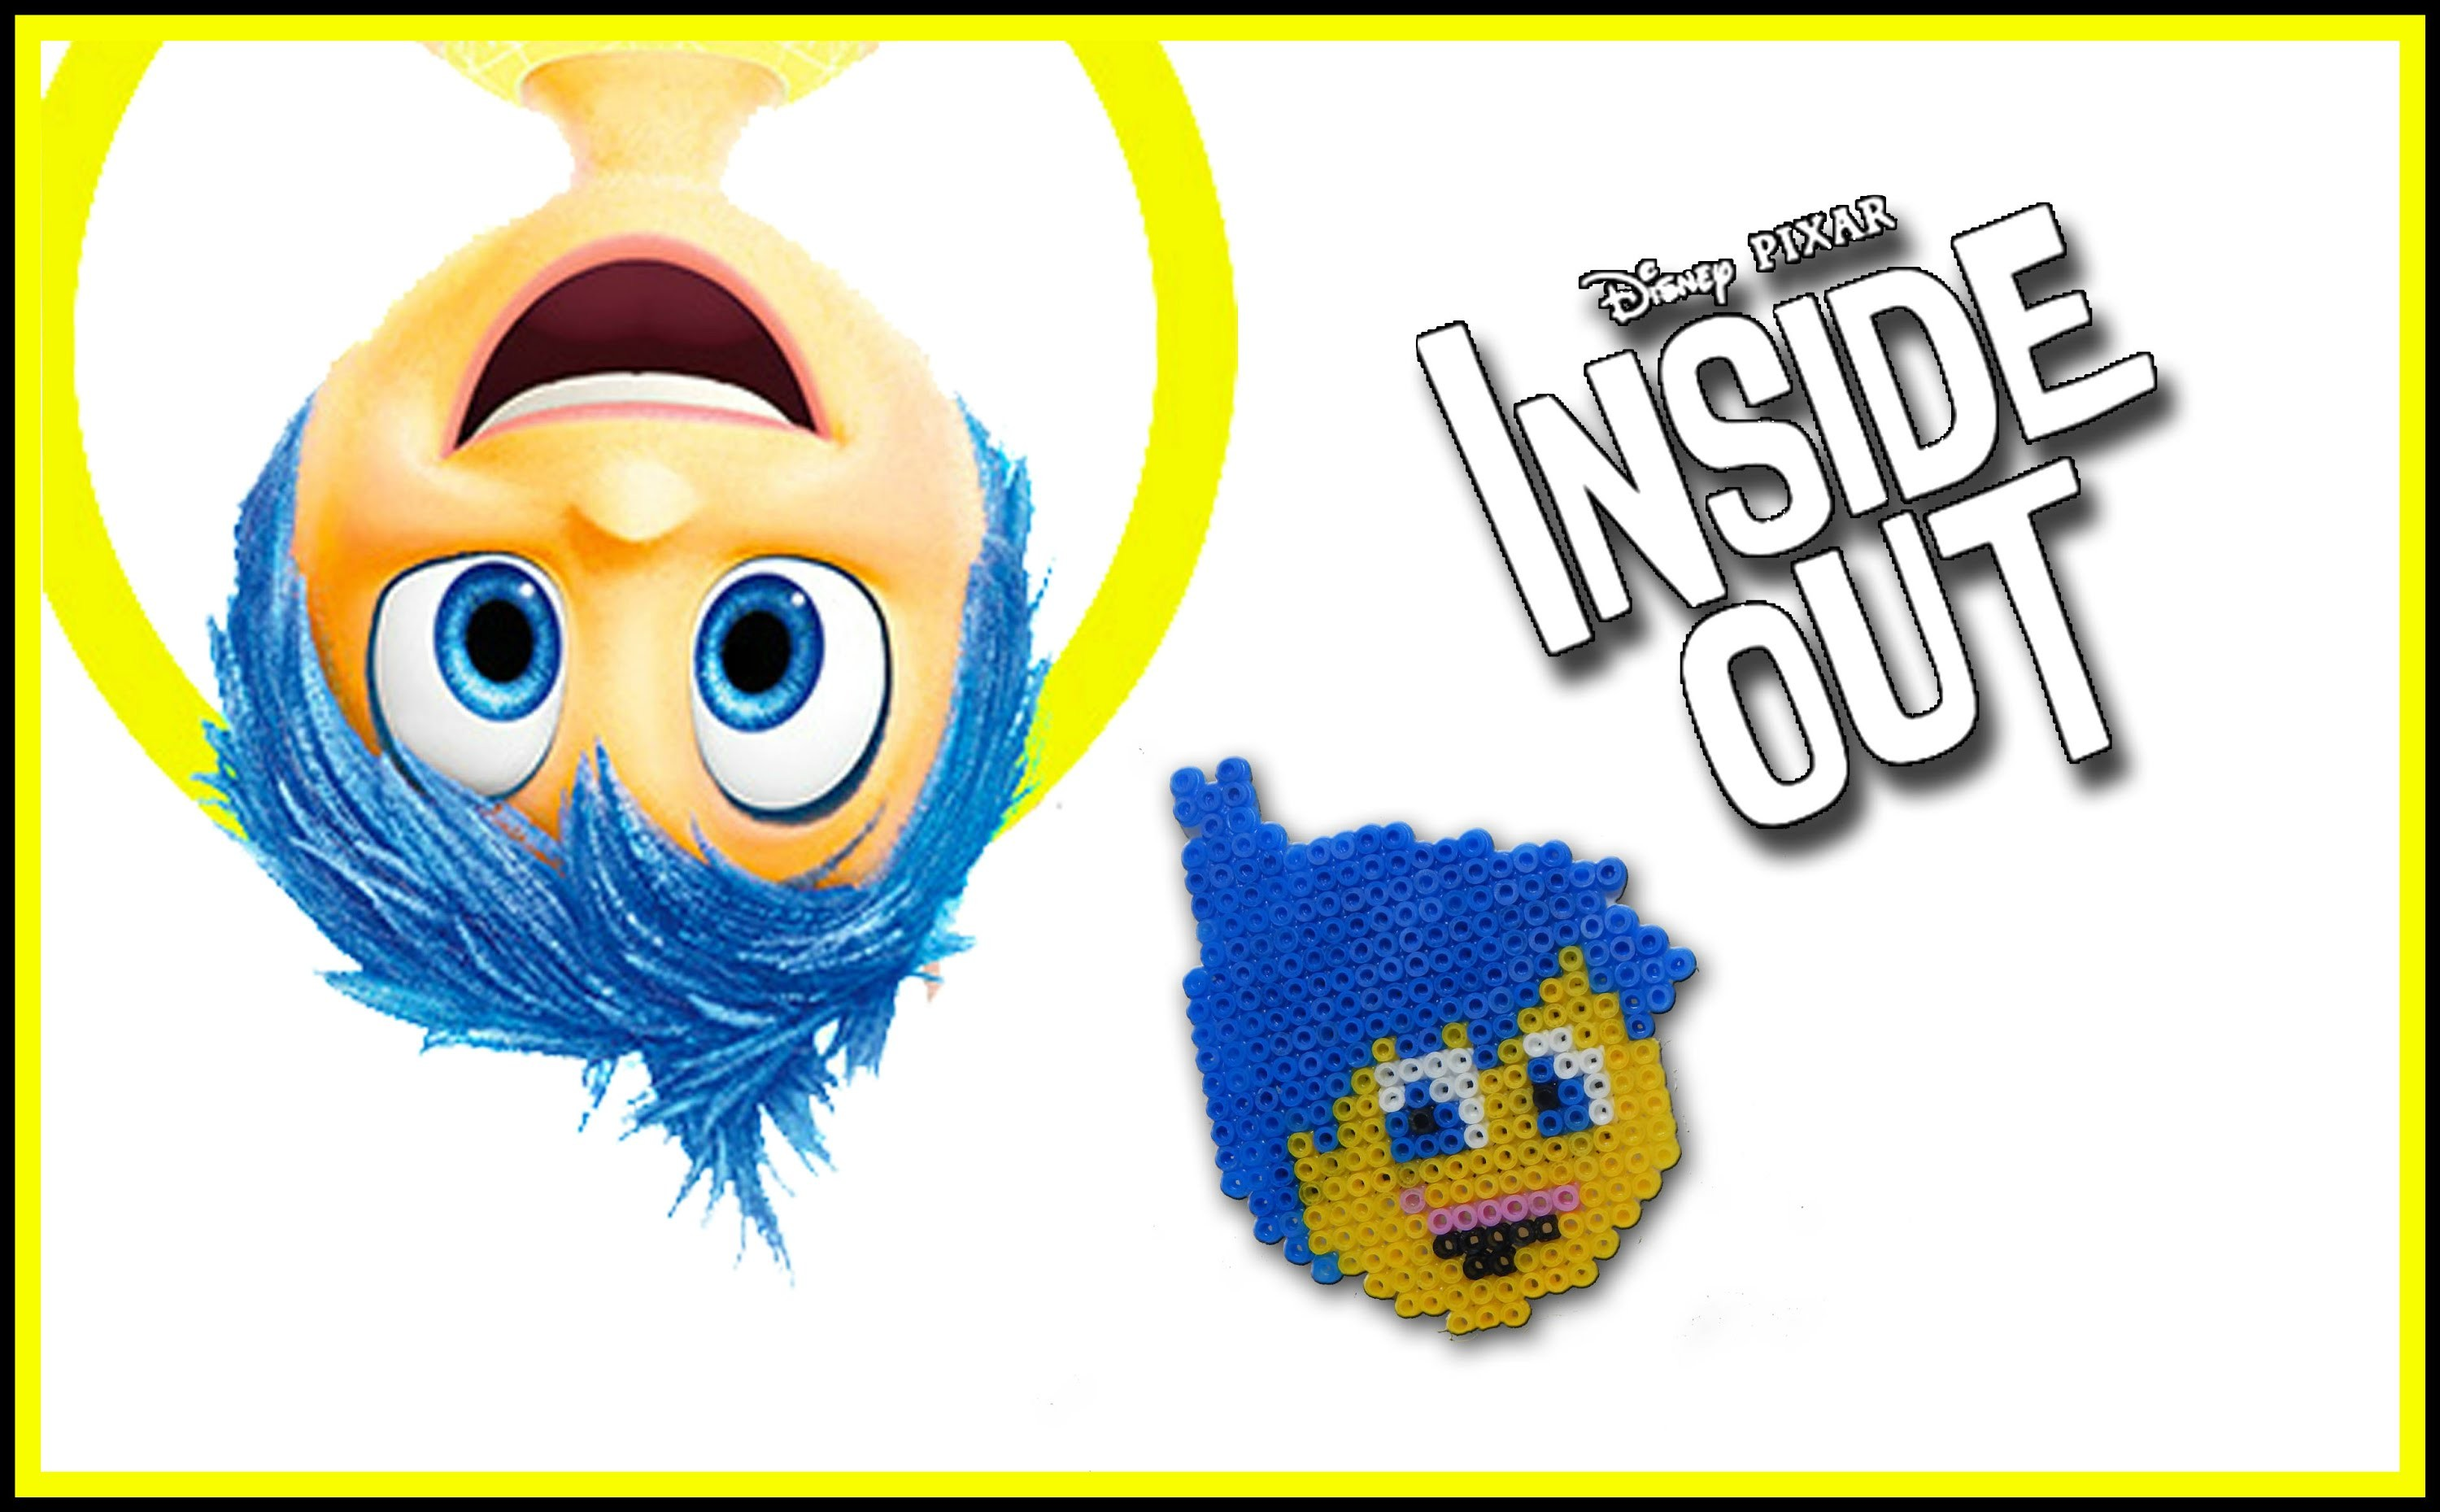 GIOIA di Inside Out con HAMA BEADS - DIY Tutorial Joy Charm